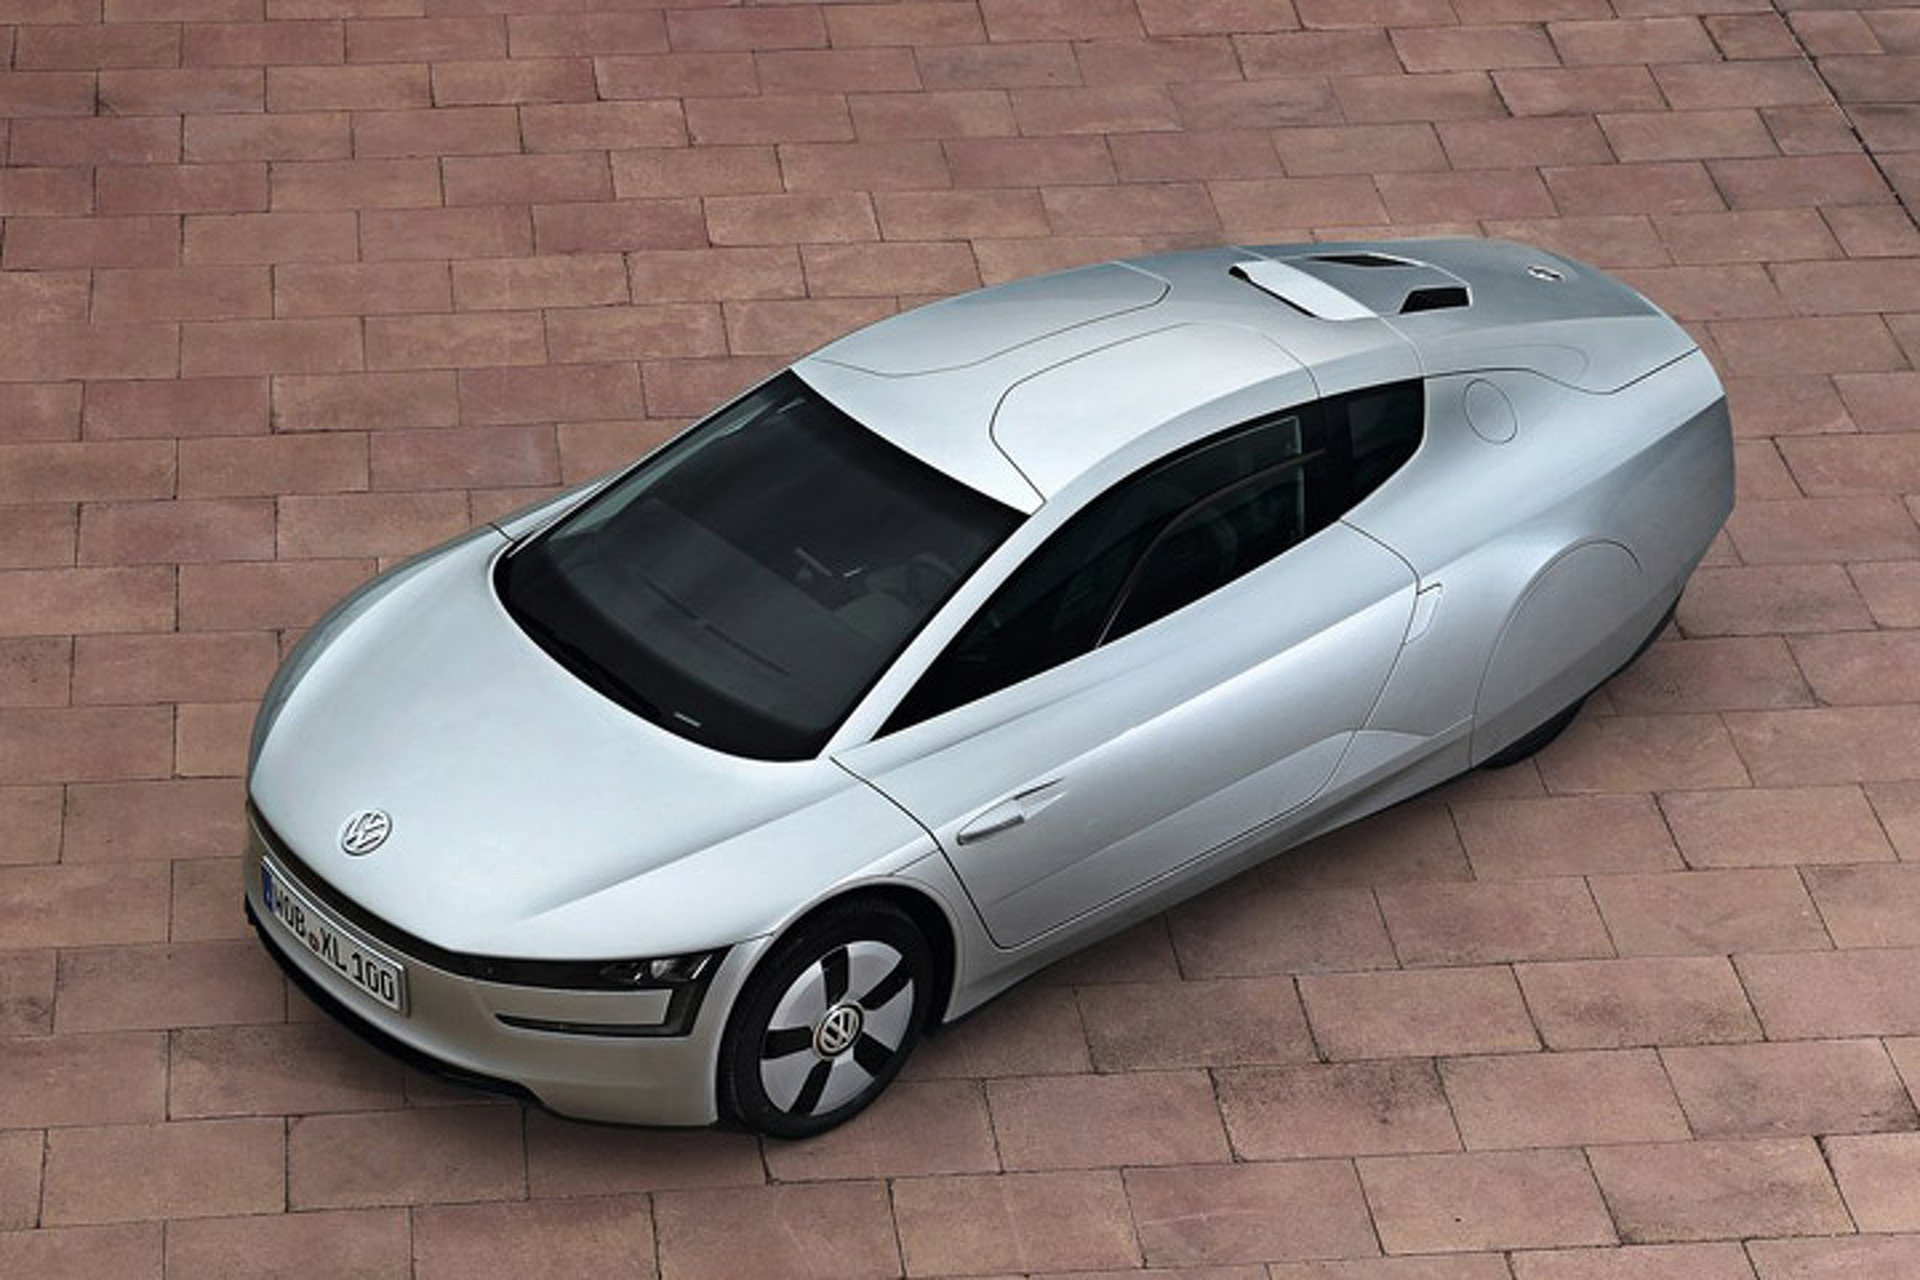 An Electric Sports Car Can Save Volkswagen's Reputation